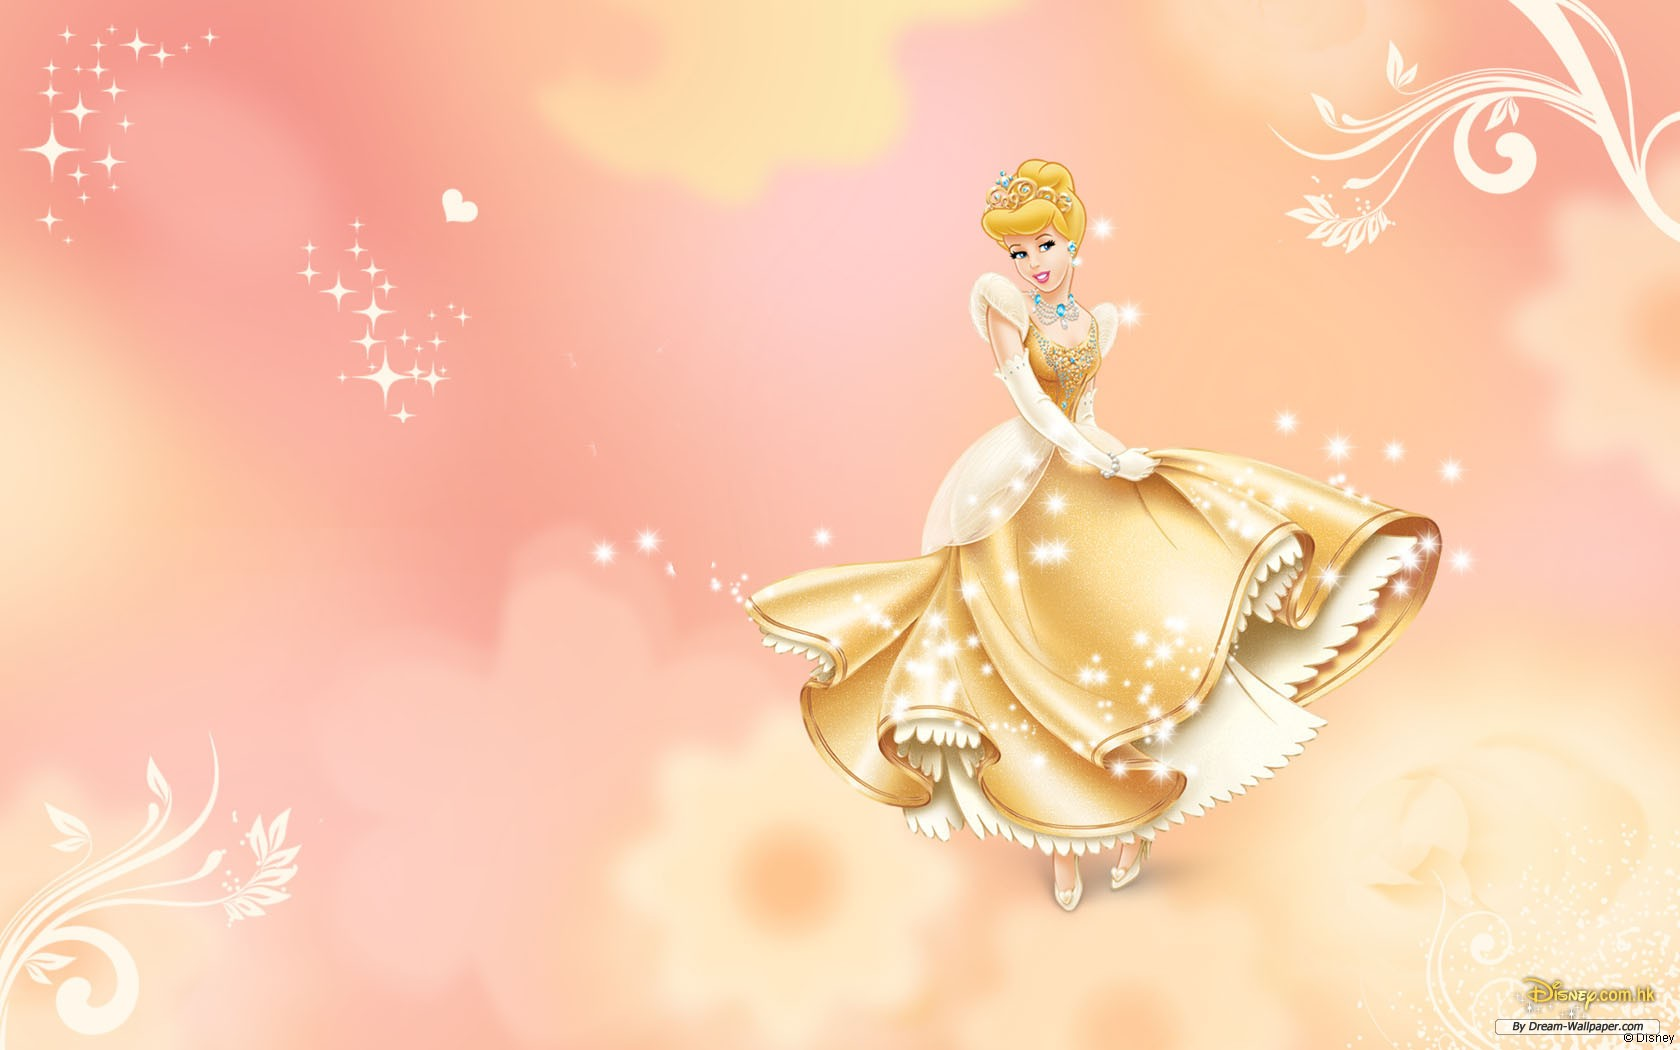 Disney Princess images princess HD wallpaper and background photos 1680x1050